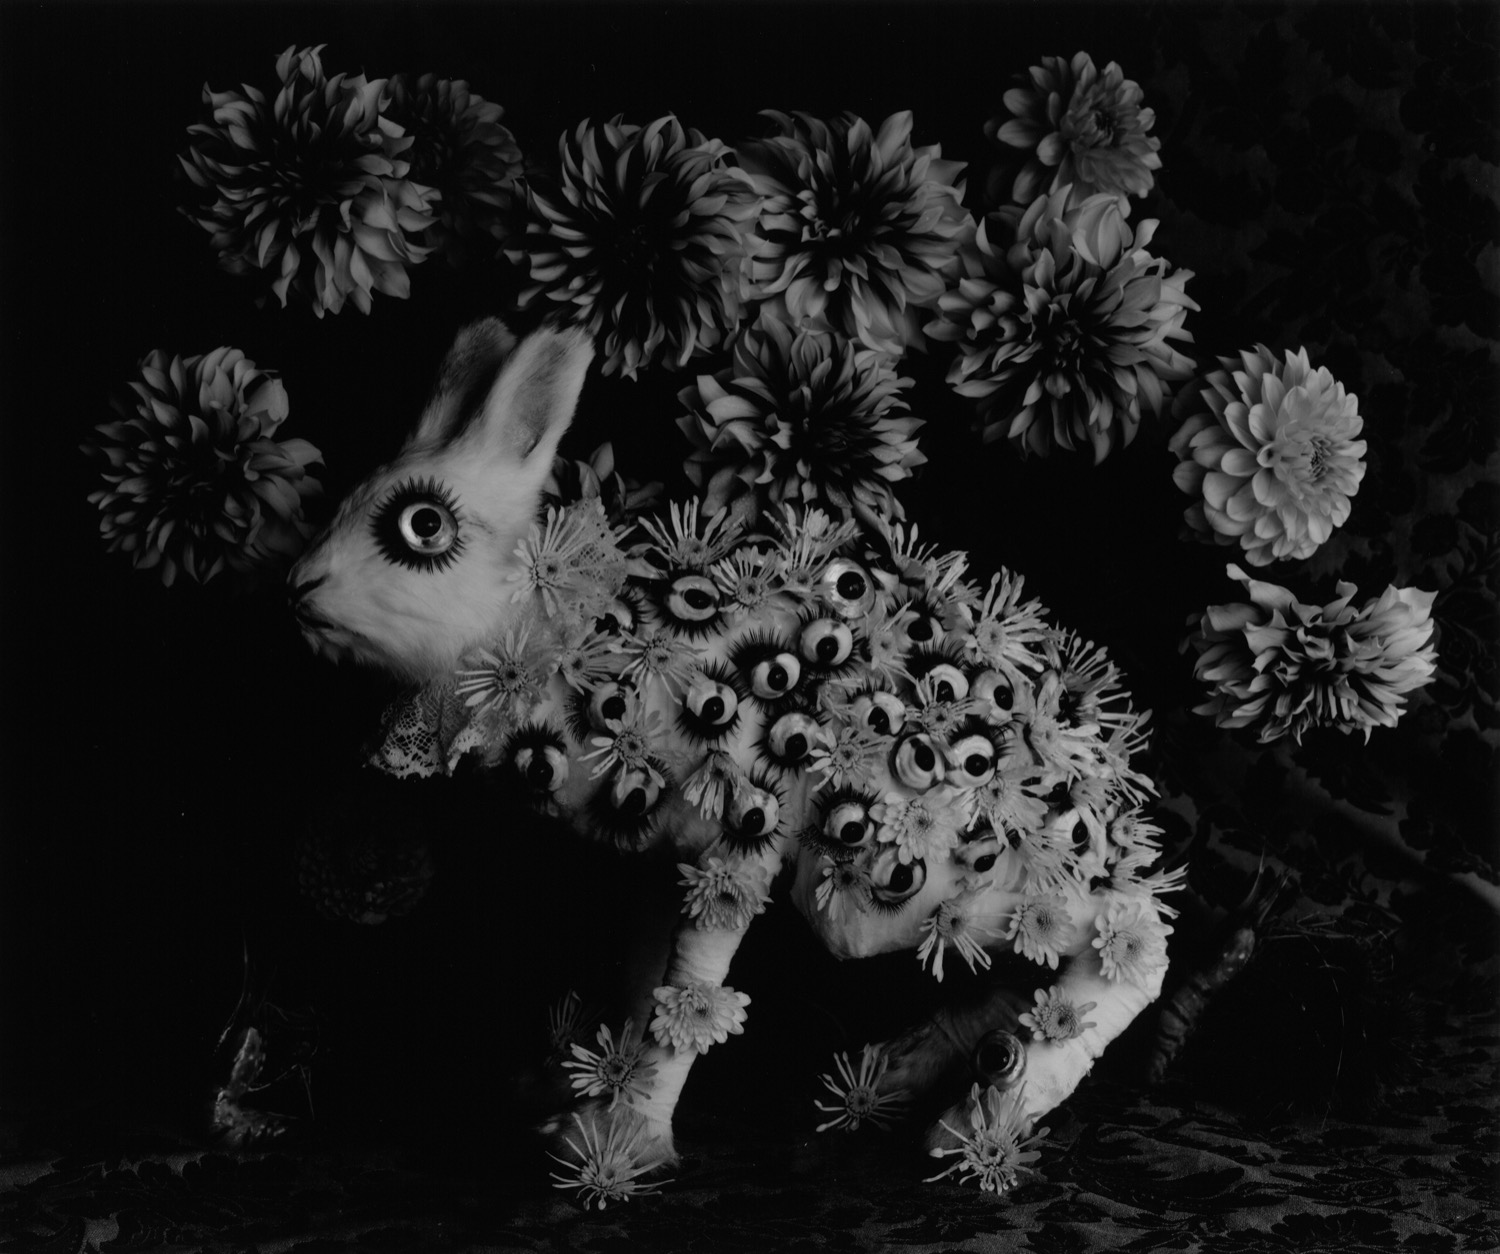 Michiko Kon, Rabbit and Eye, 2013, Silver print, 40,6 x 50,8 cm